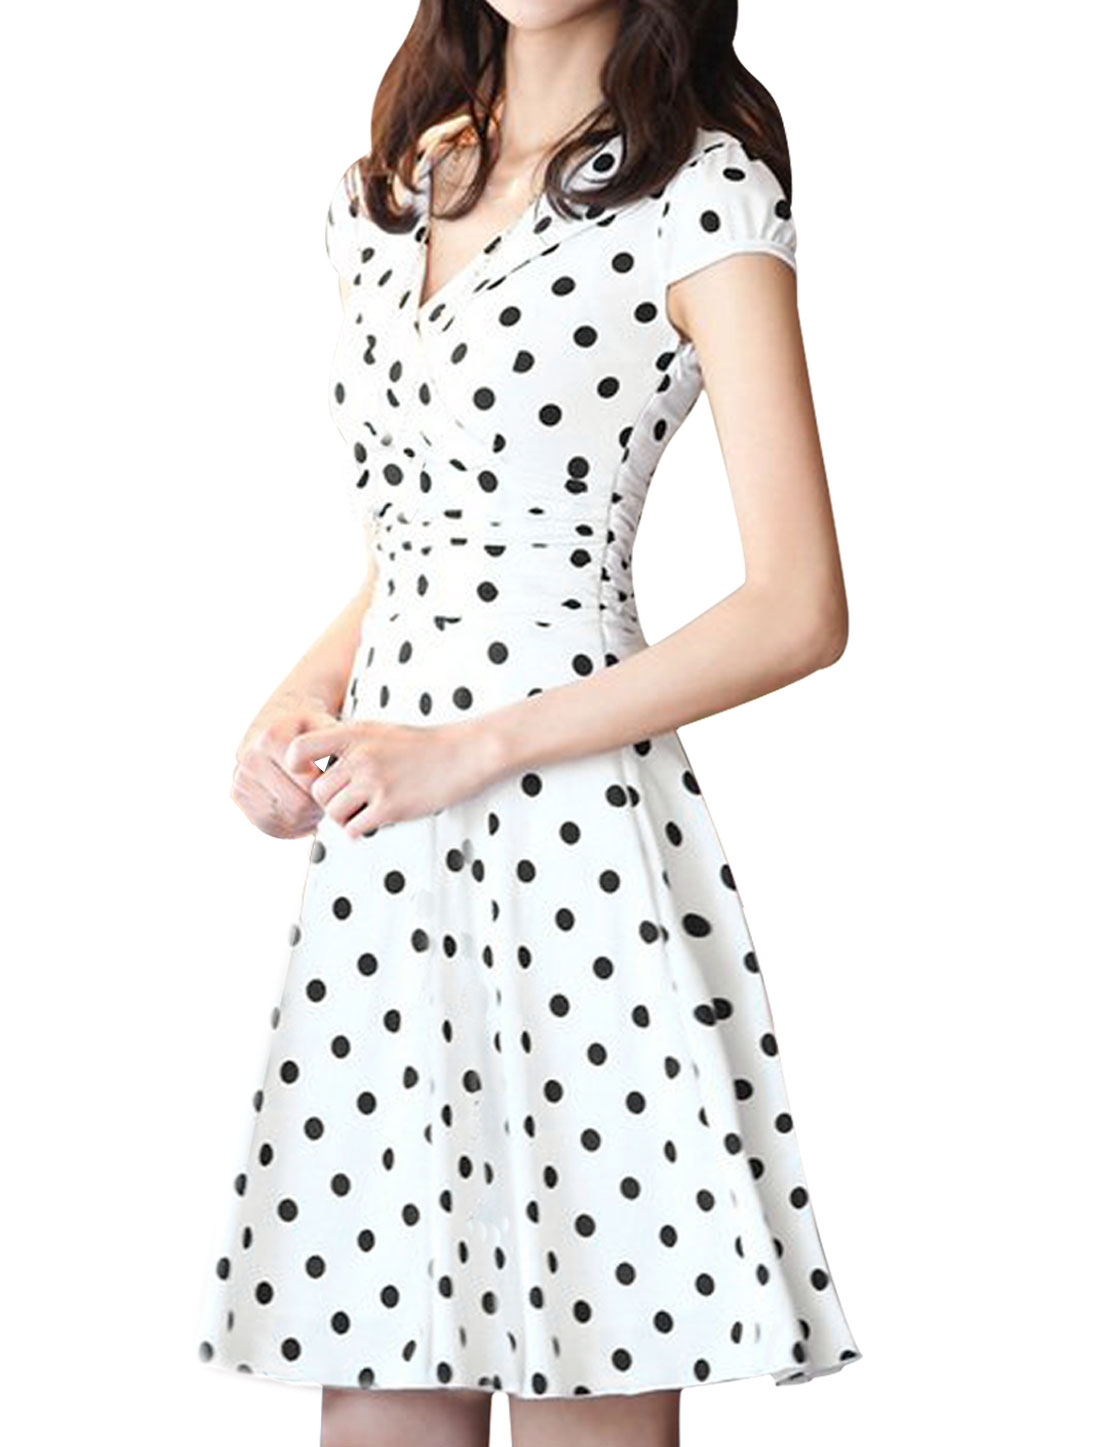 Lady Stylish Dots Pattern Design White Fit-and-Flare Dress L